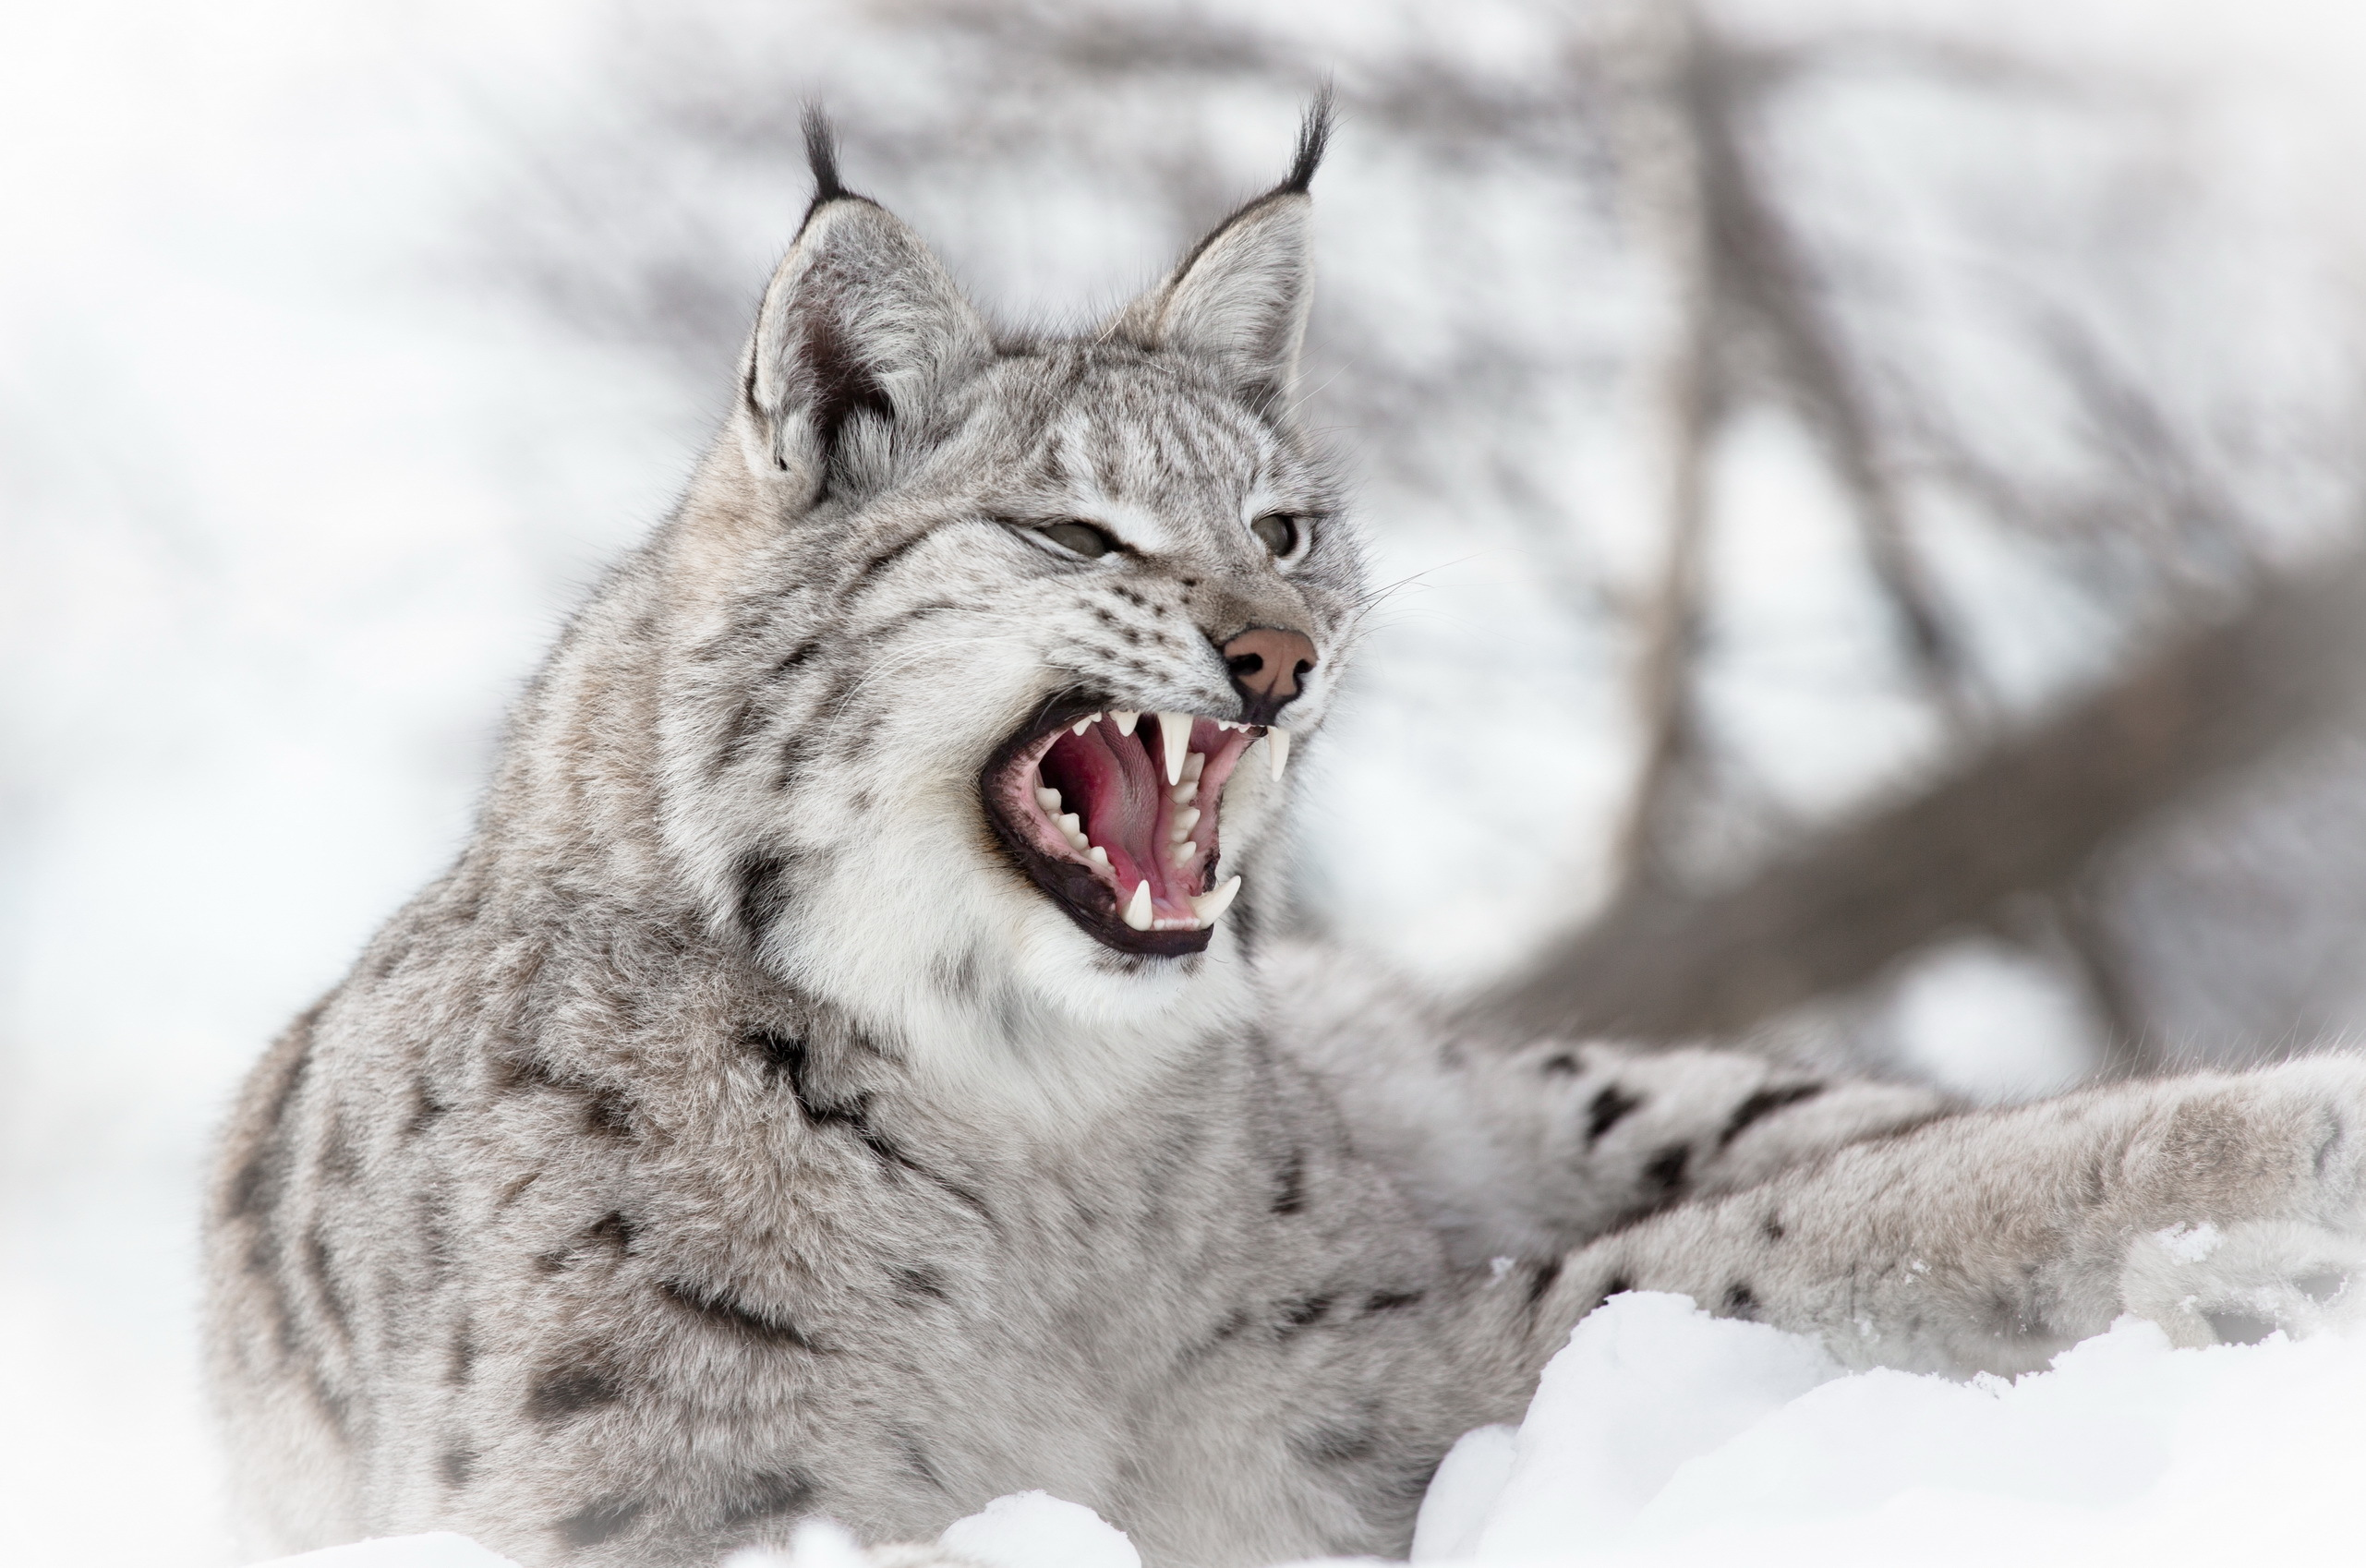 51868 download wallpaper Animals, Snow, Iris, Aggression, Predator screensavers and pictures for free